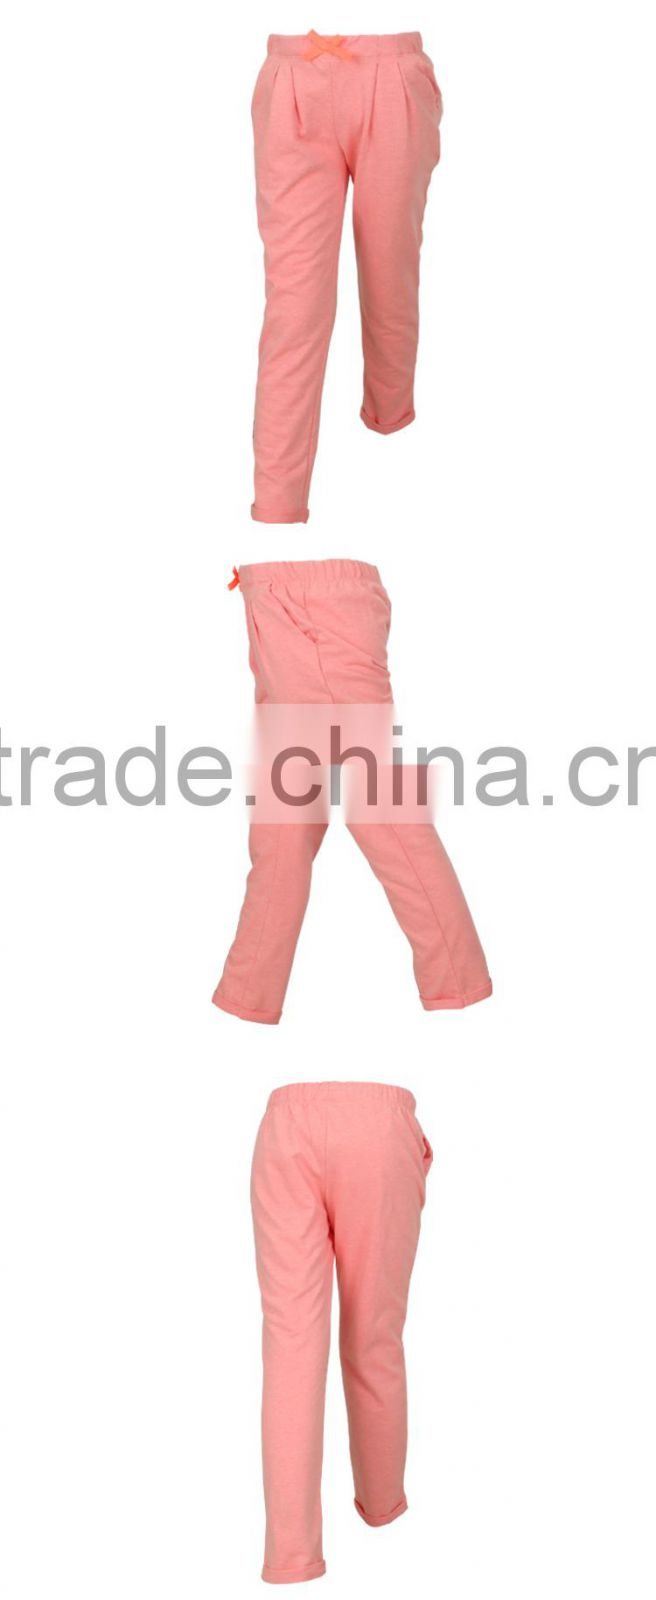 100% Cotton Girls Harem Sweat Pants for Wholesale with OEM ODM